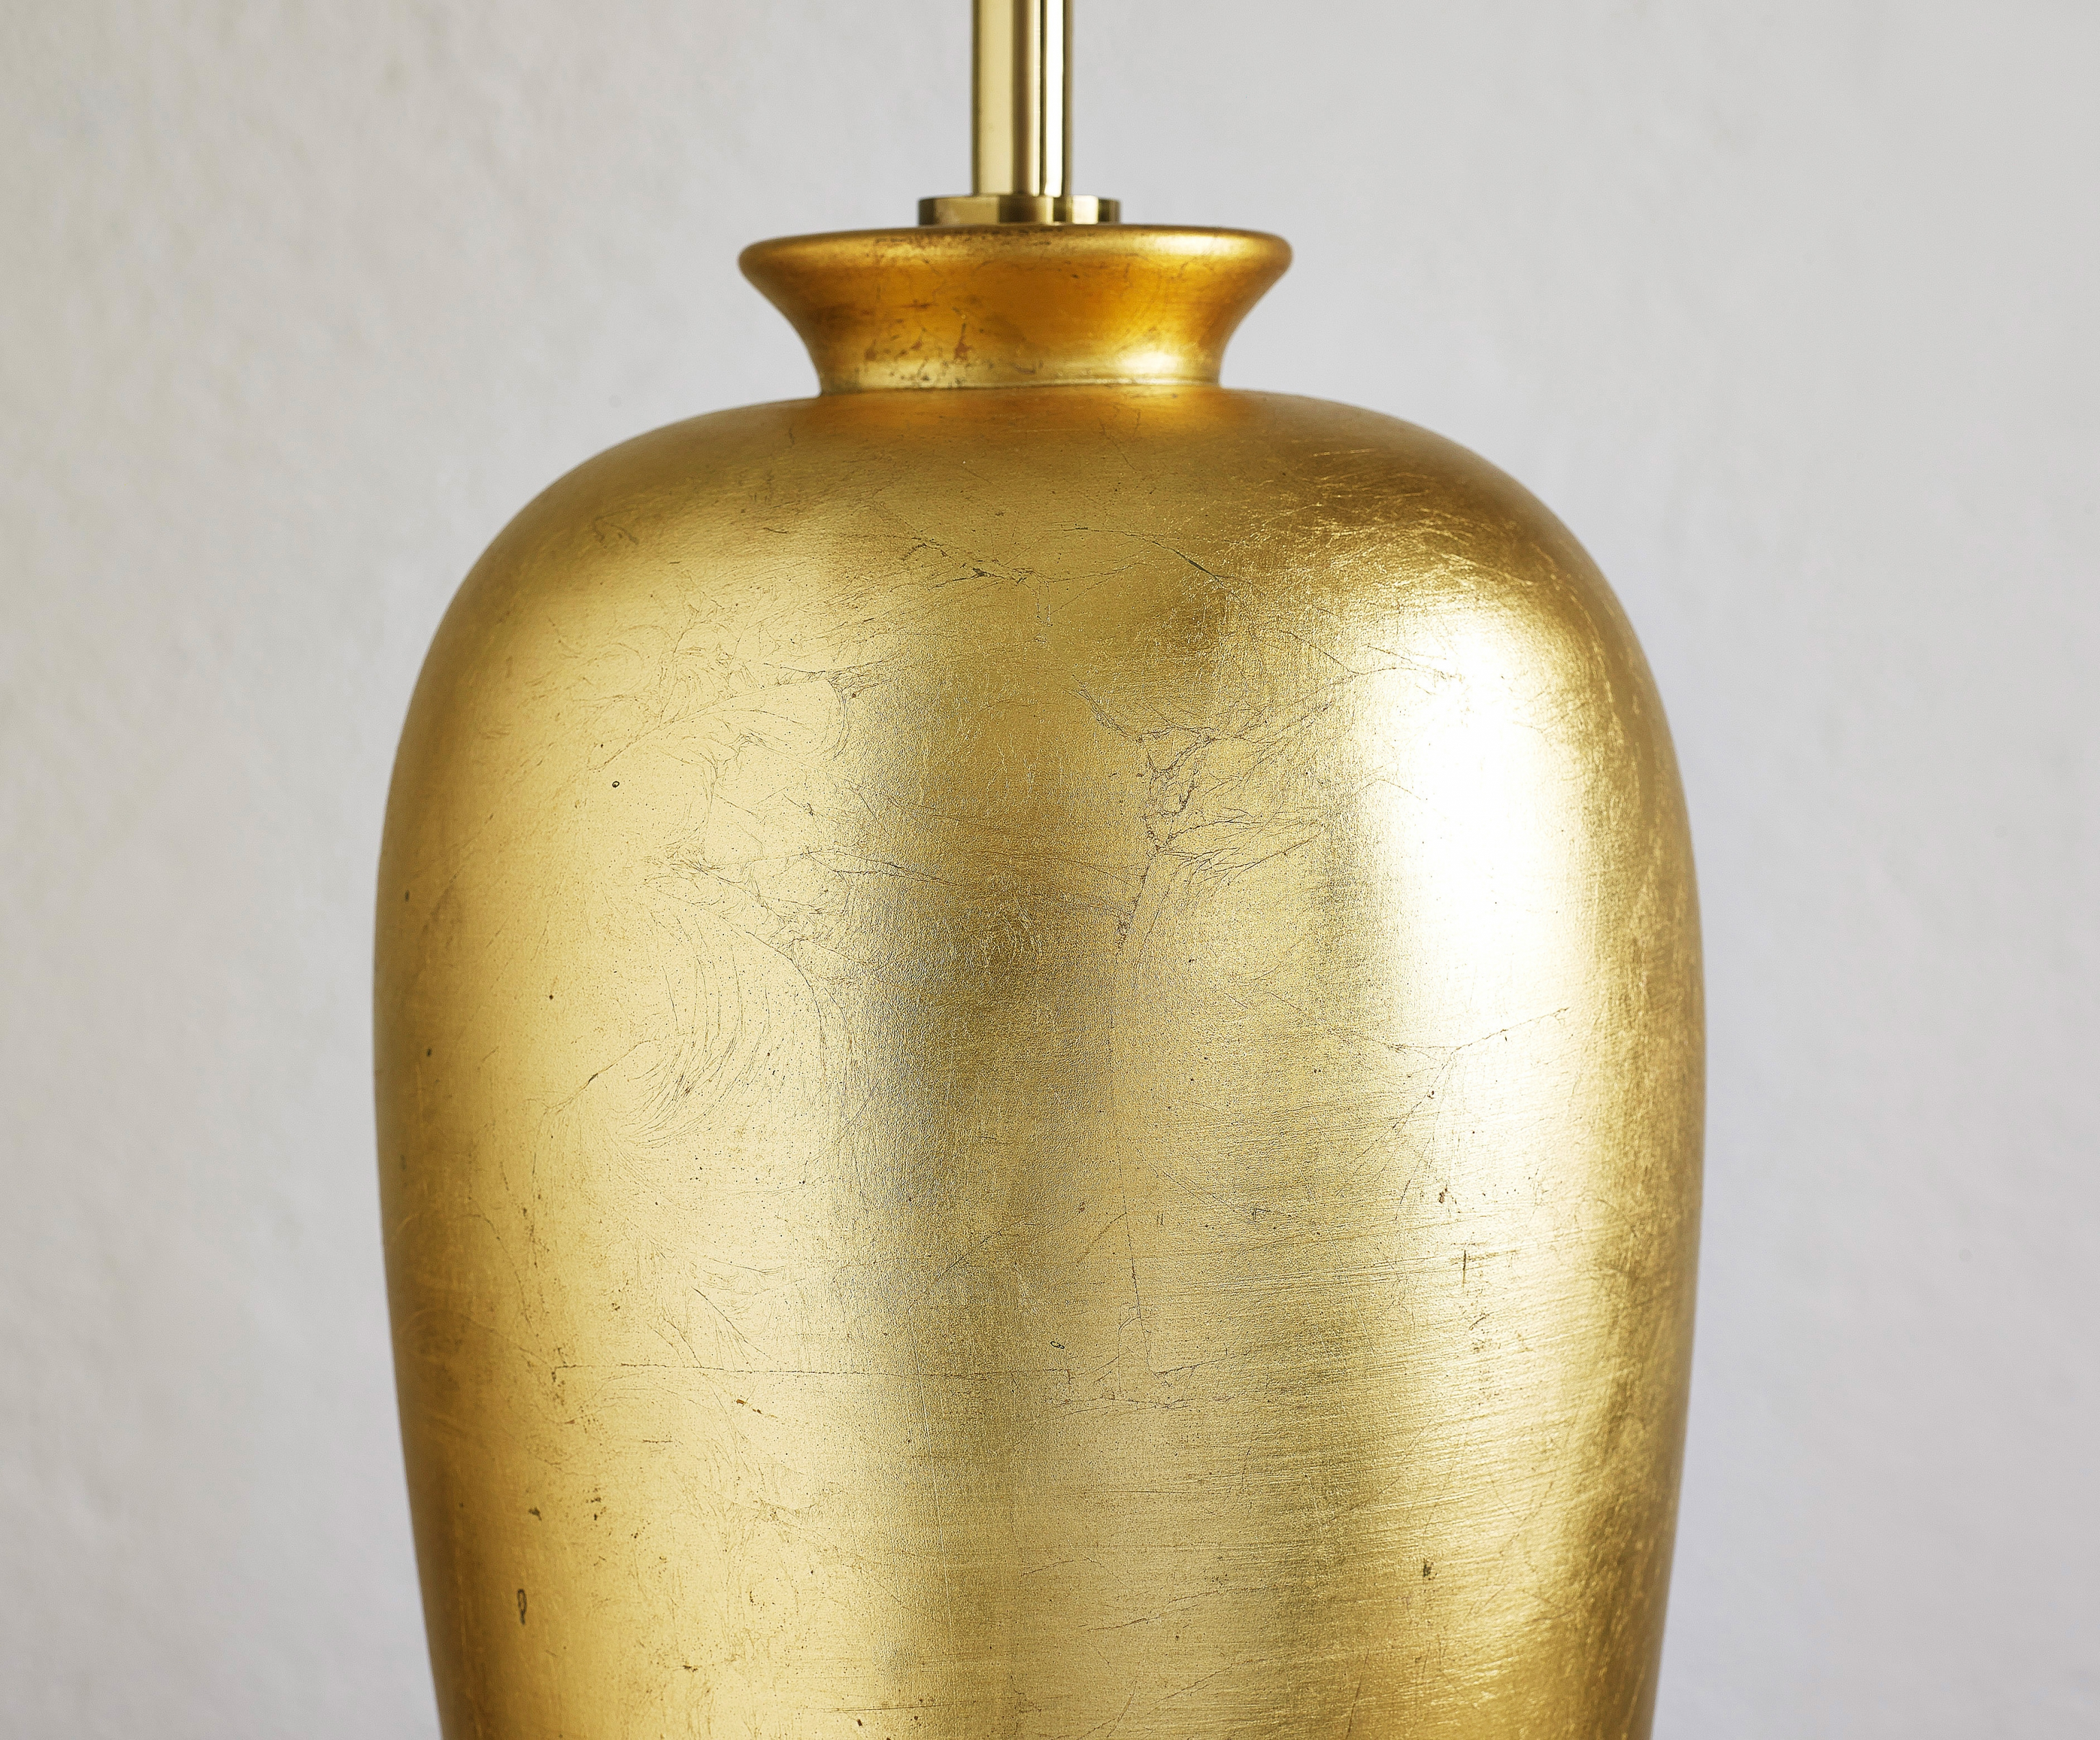 table-lamp-by-ugo-zaccagnini-image-02